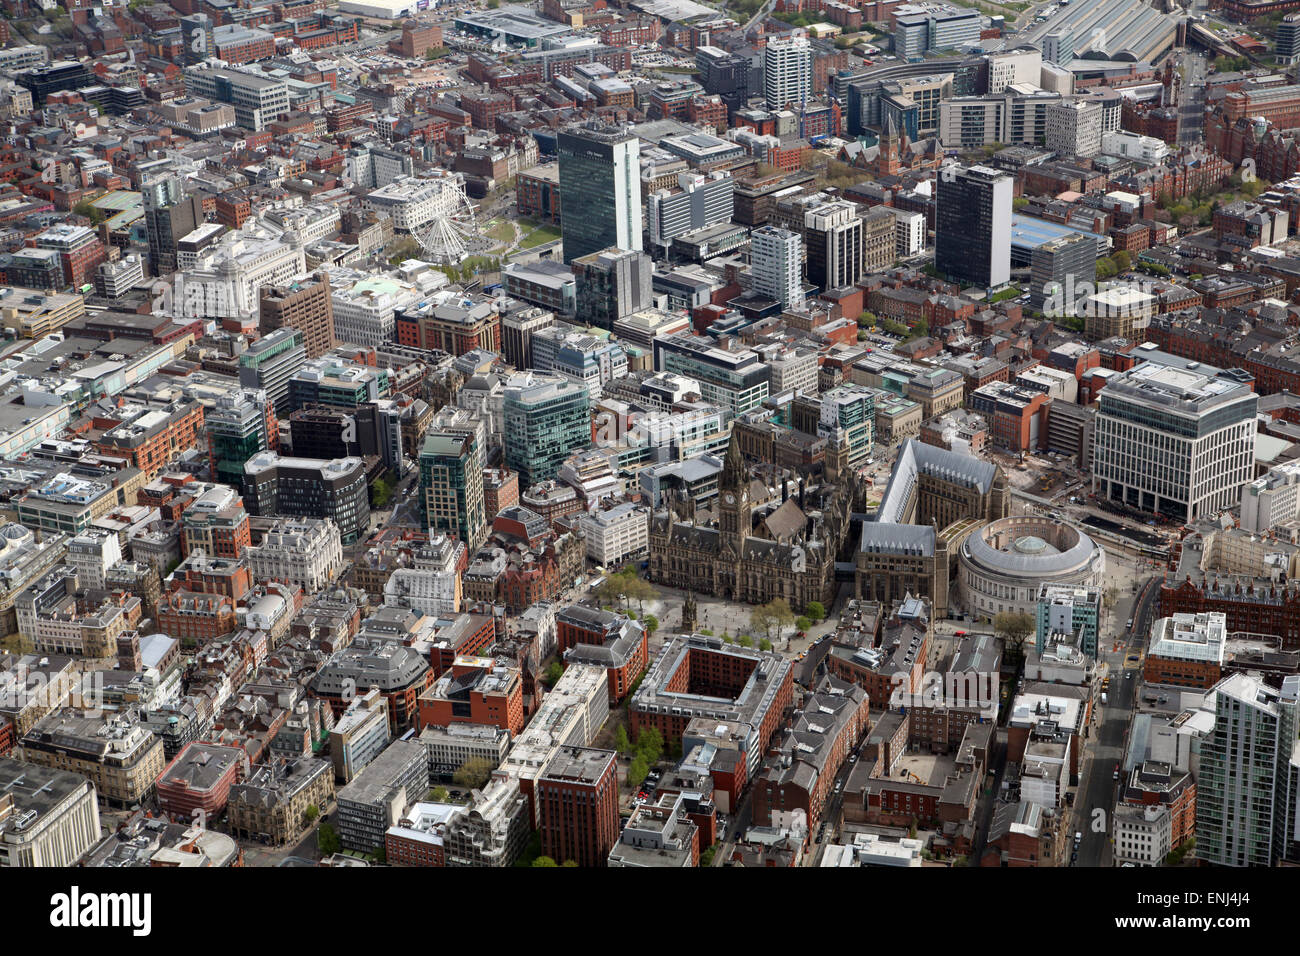 aerial view of Manchester city centre, UK Stock Photo